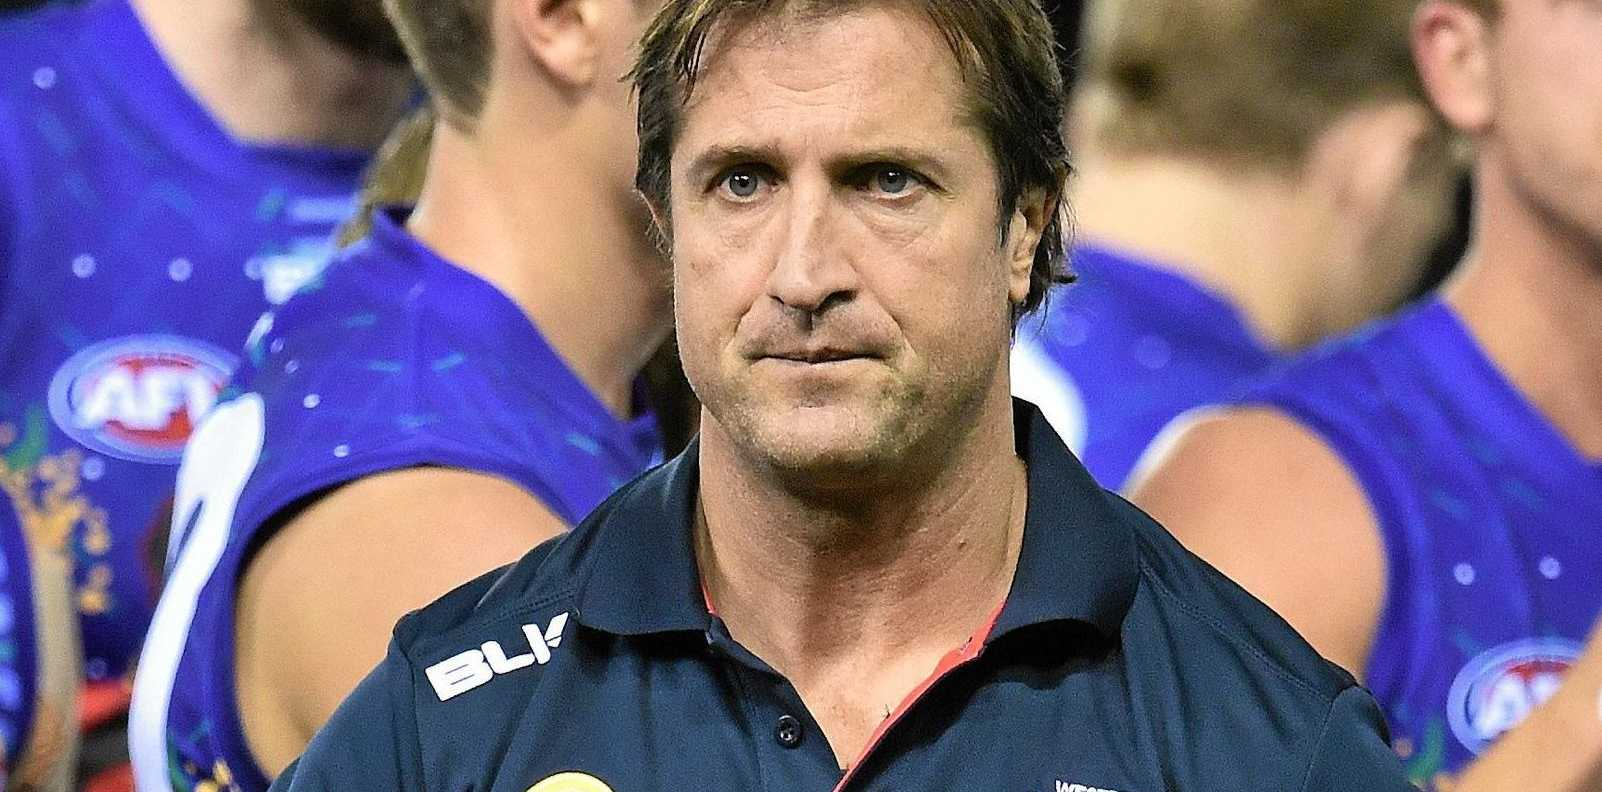 BIG TEST: Bulldogs coach Luke Beveridge during the round 11 AFL match between the Western Bulldogs and the West Coast Eagles.